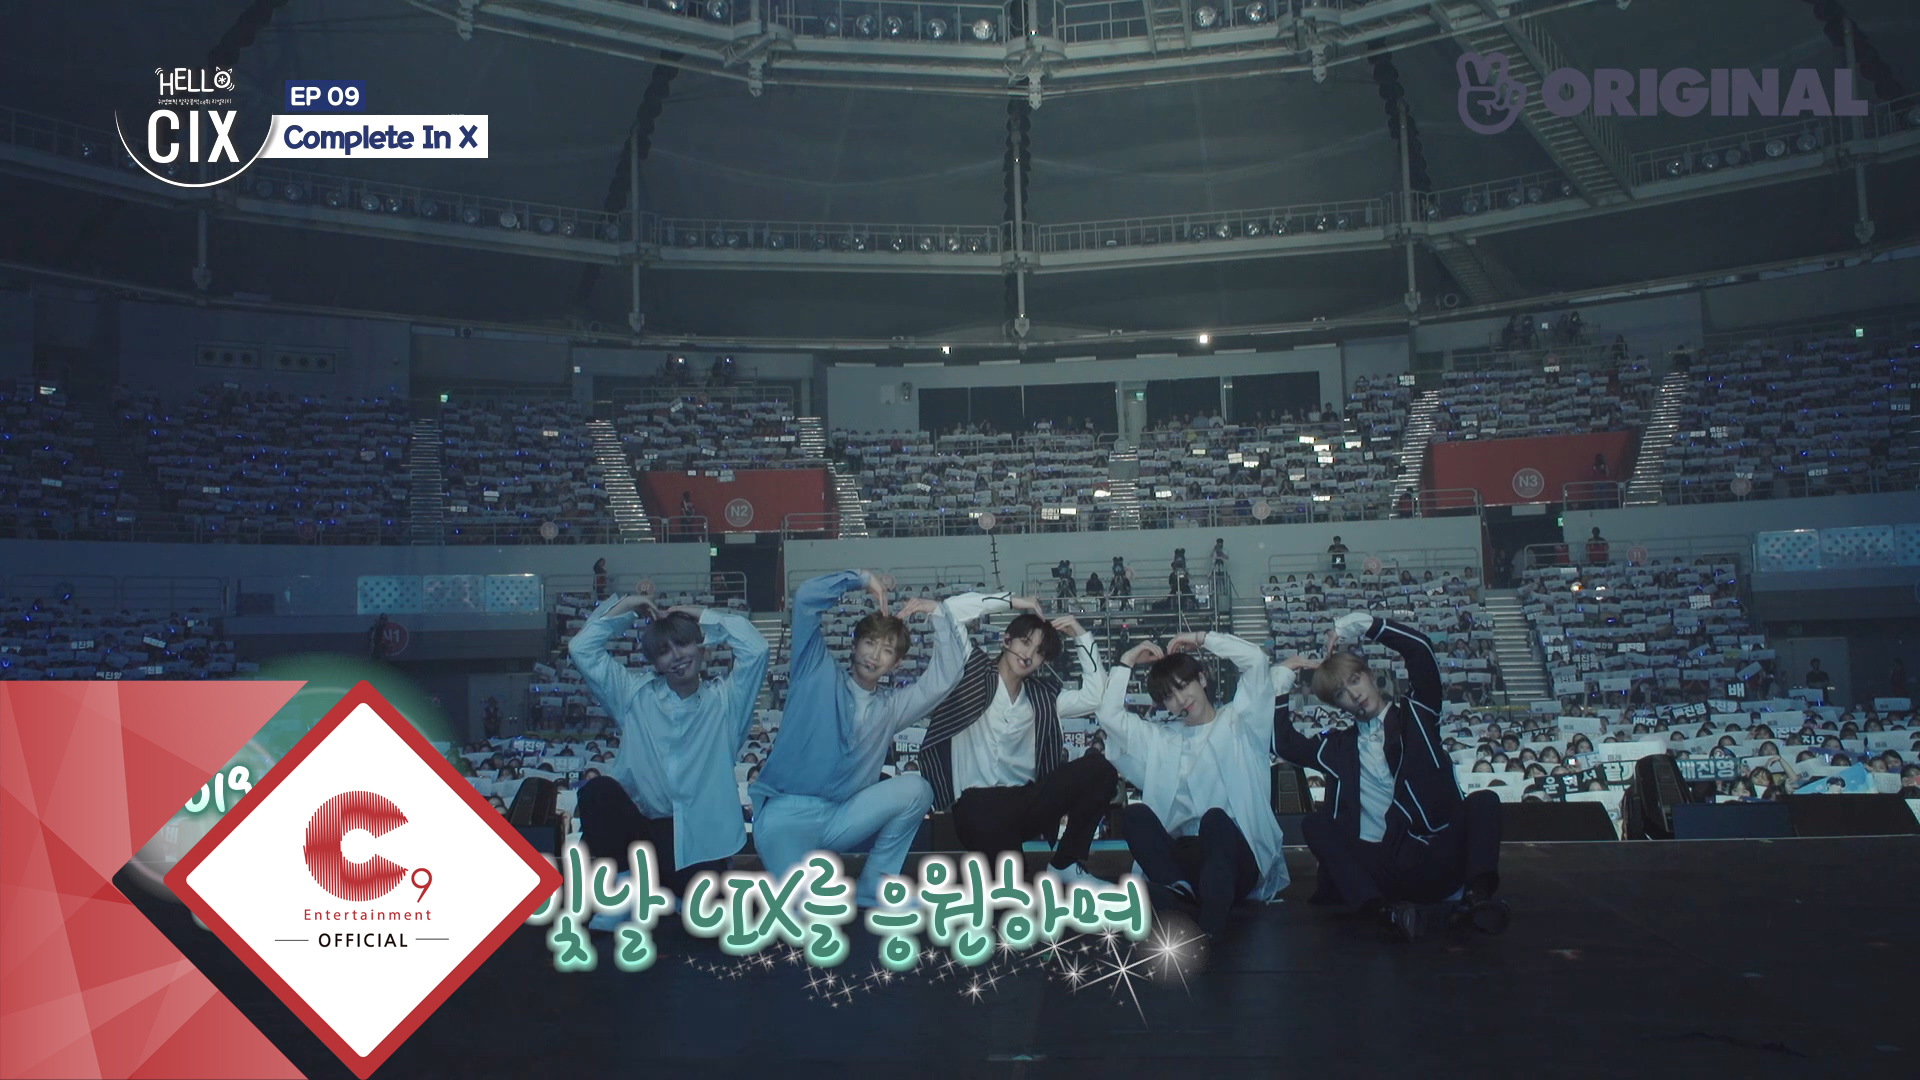 HELLO CIX EP09 :: Complete In X